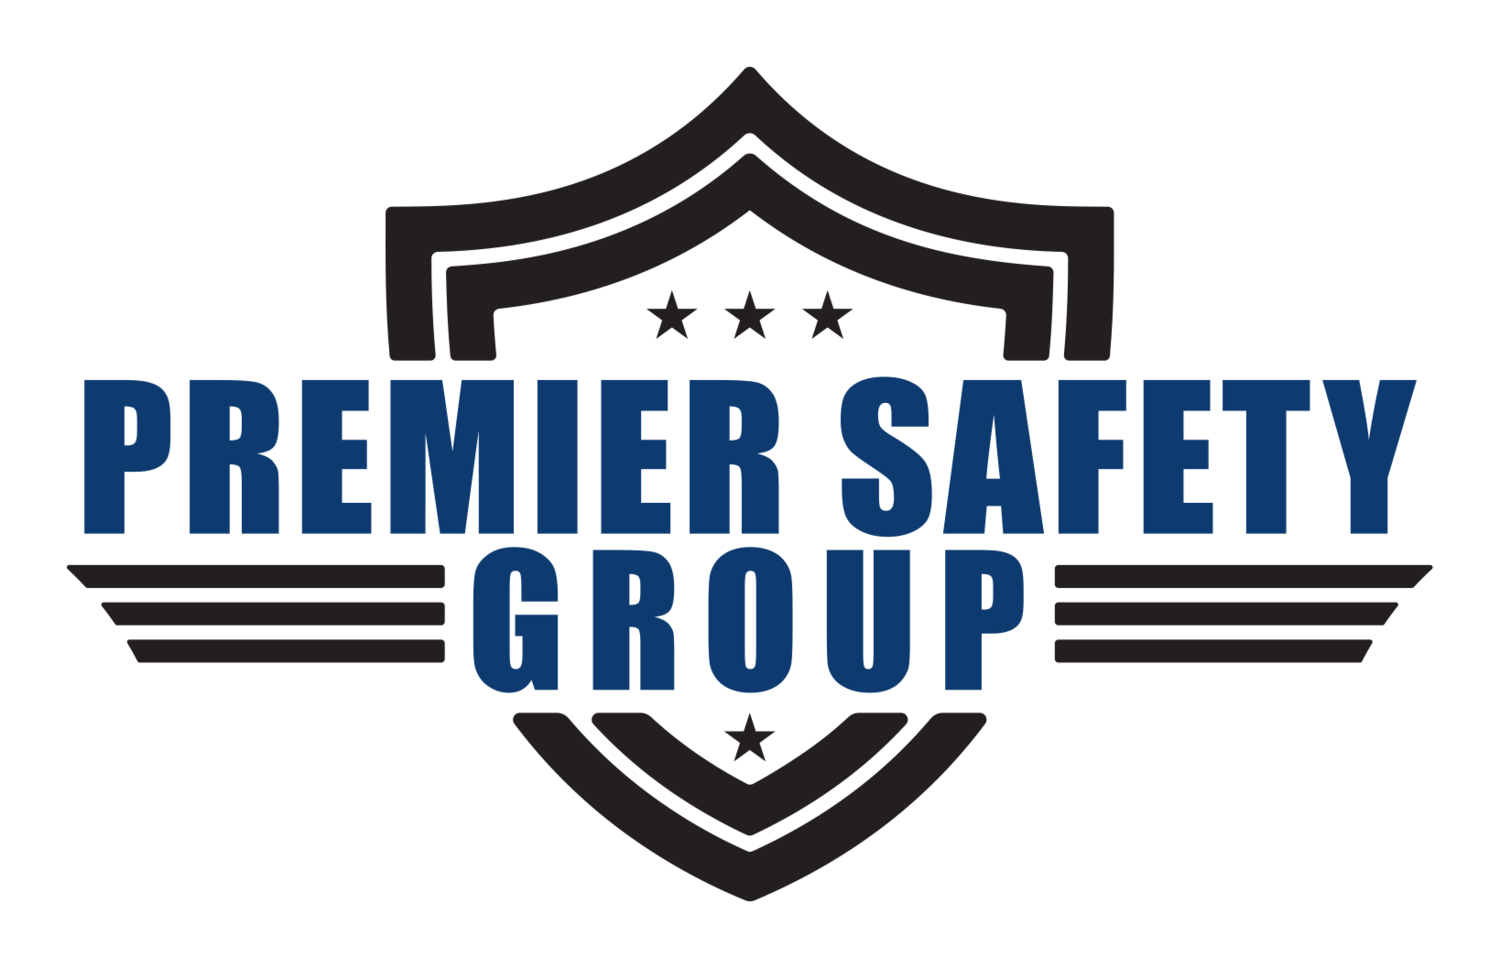 Premier Safety Group